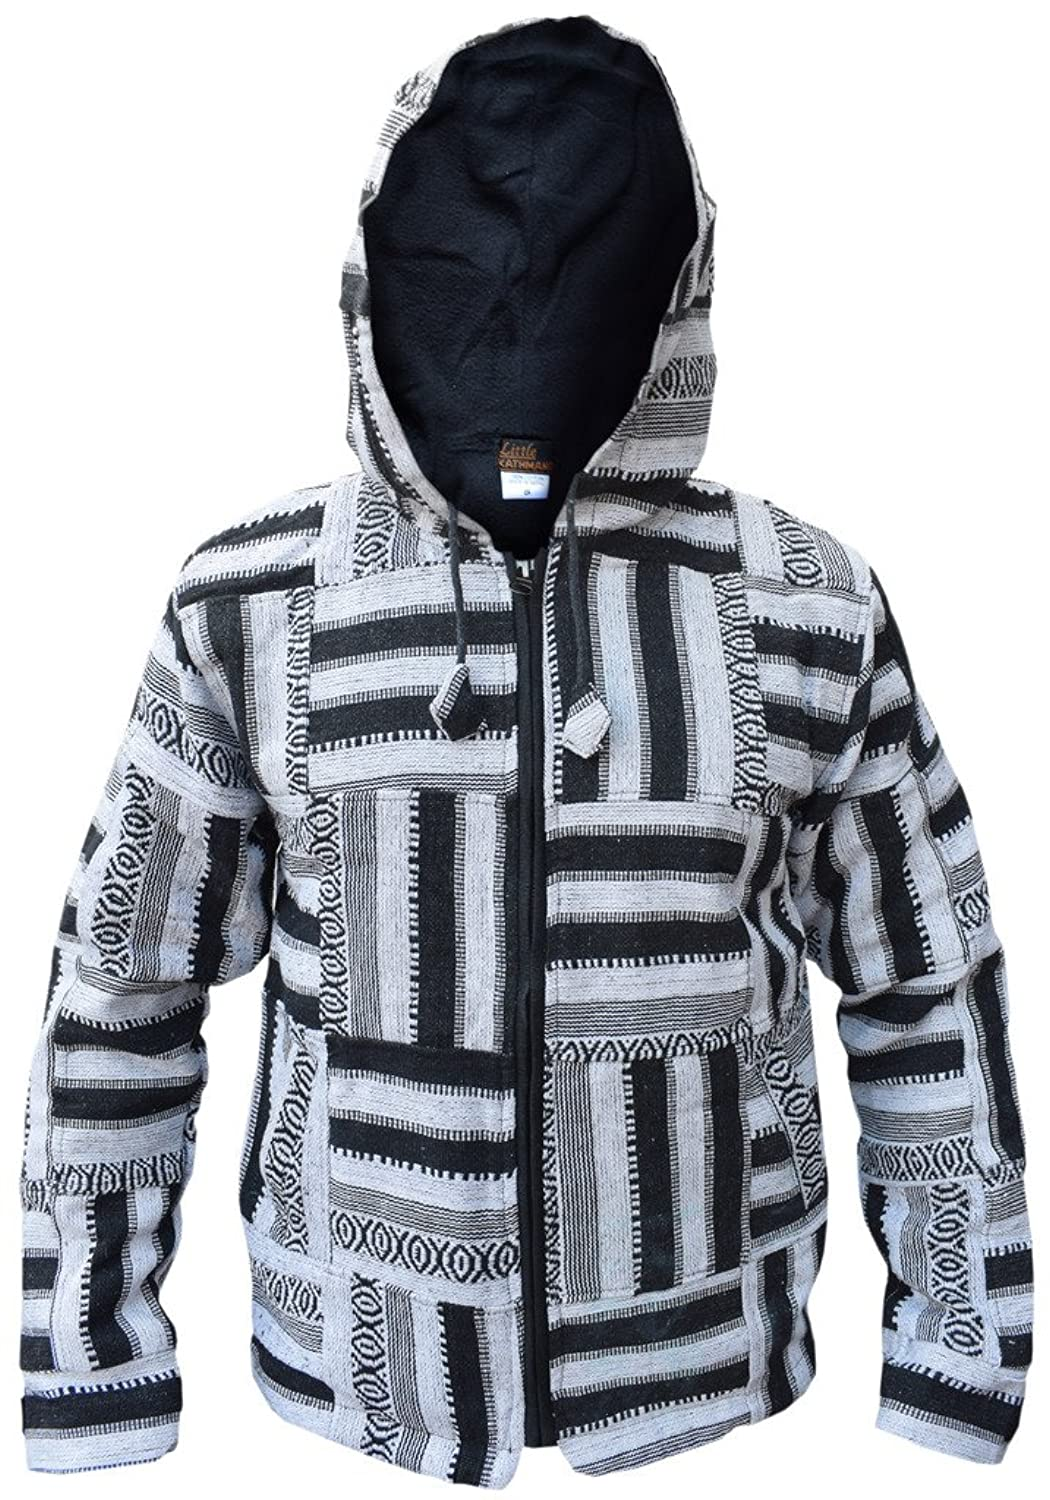 Little Kathmandu Men's Black White Patchwork Fleece Lined Winter Jacket